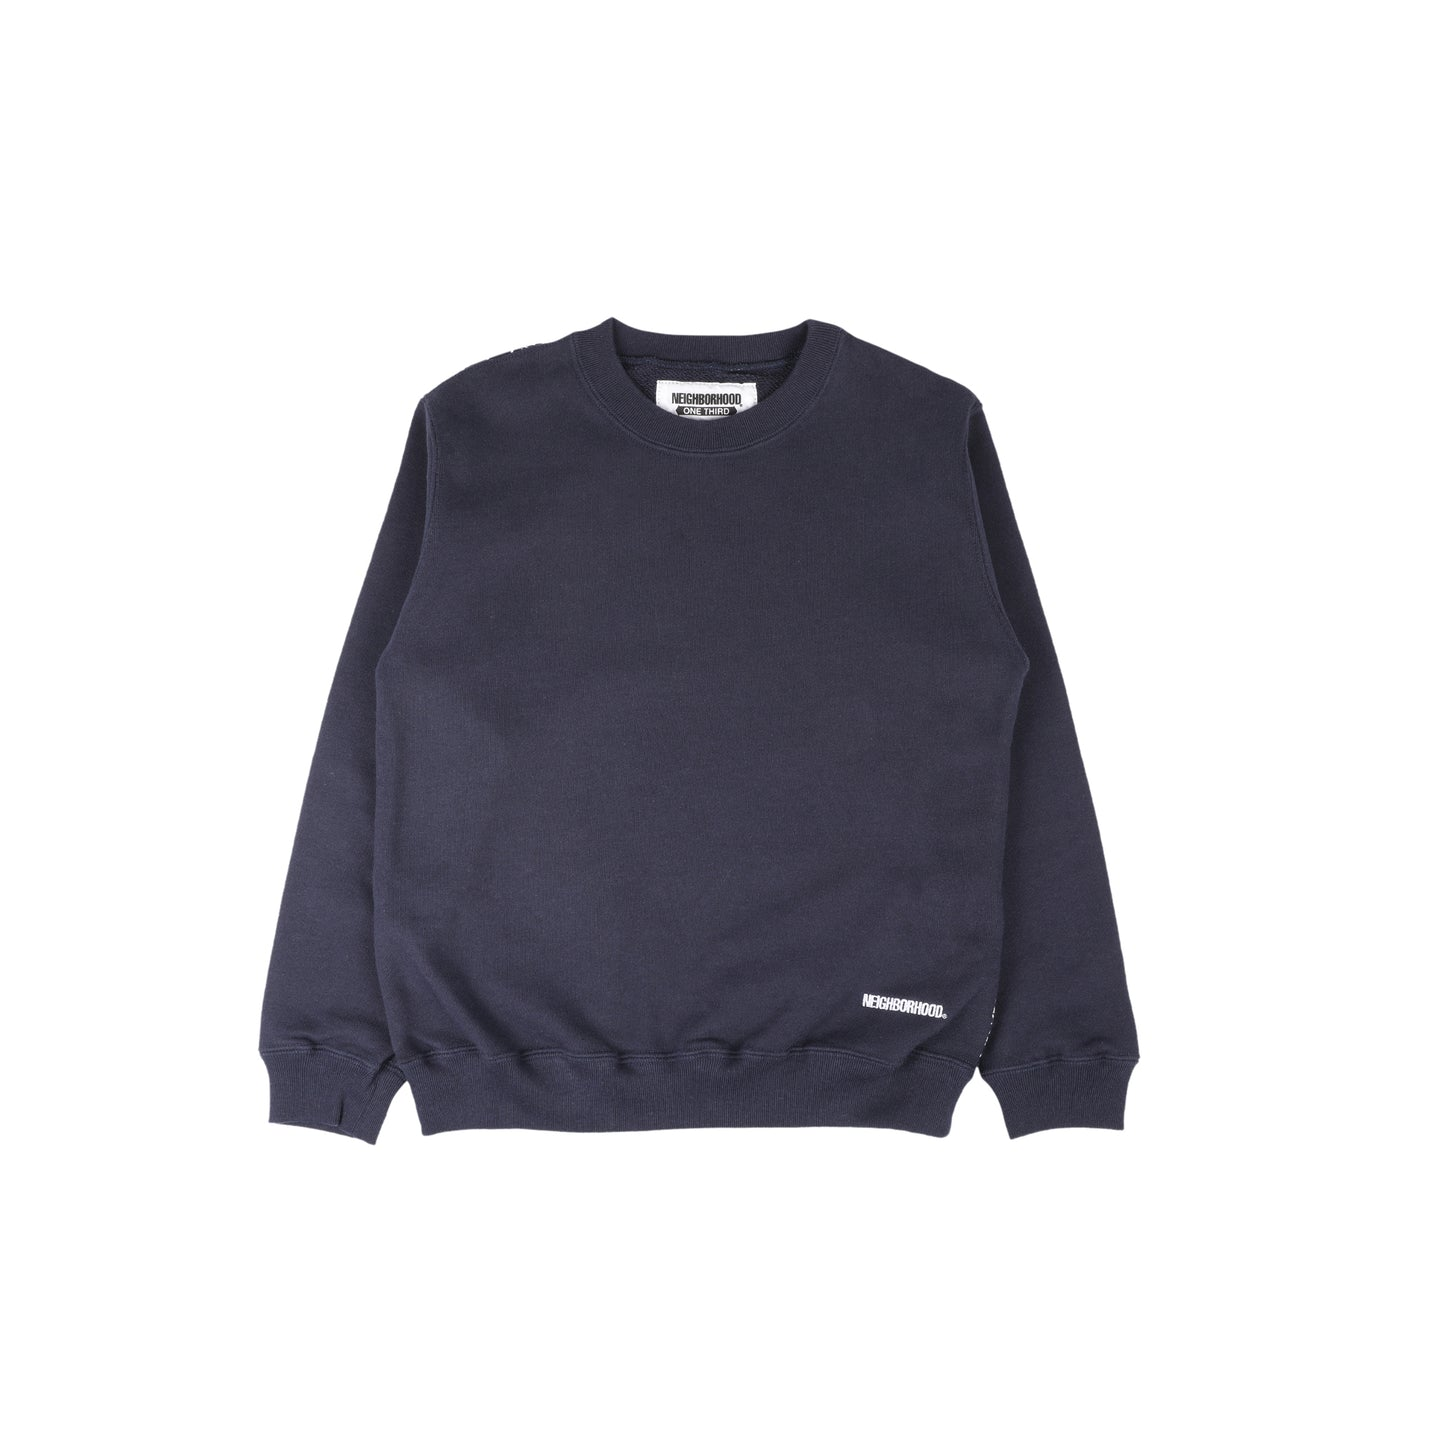 Neighborhood One Third Classic-S Sweatshirt Navy